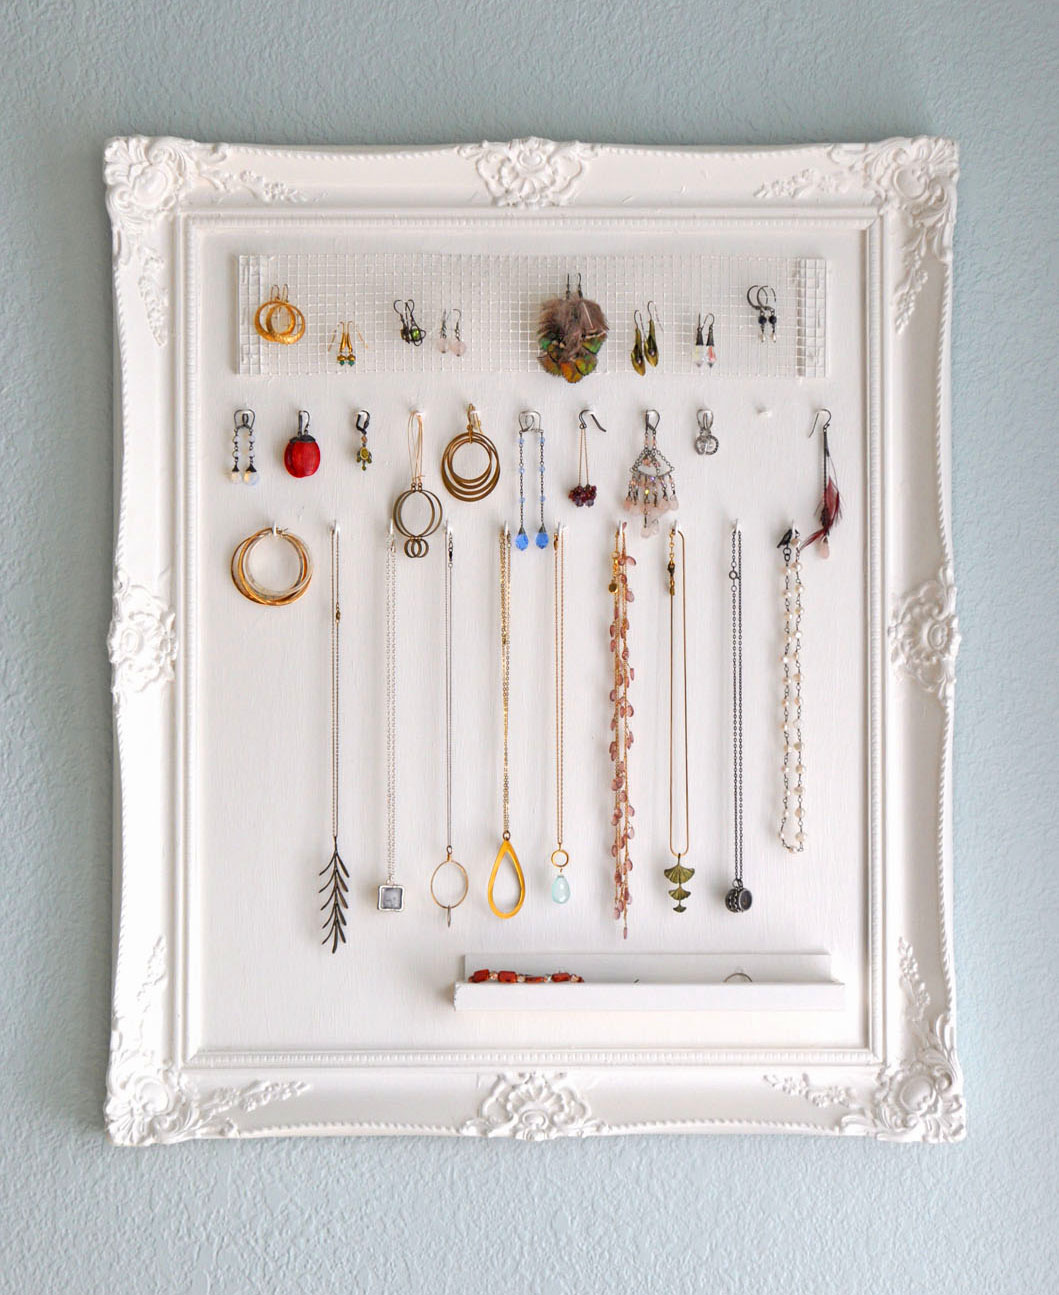 doityourself jewelry storage